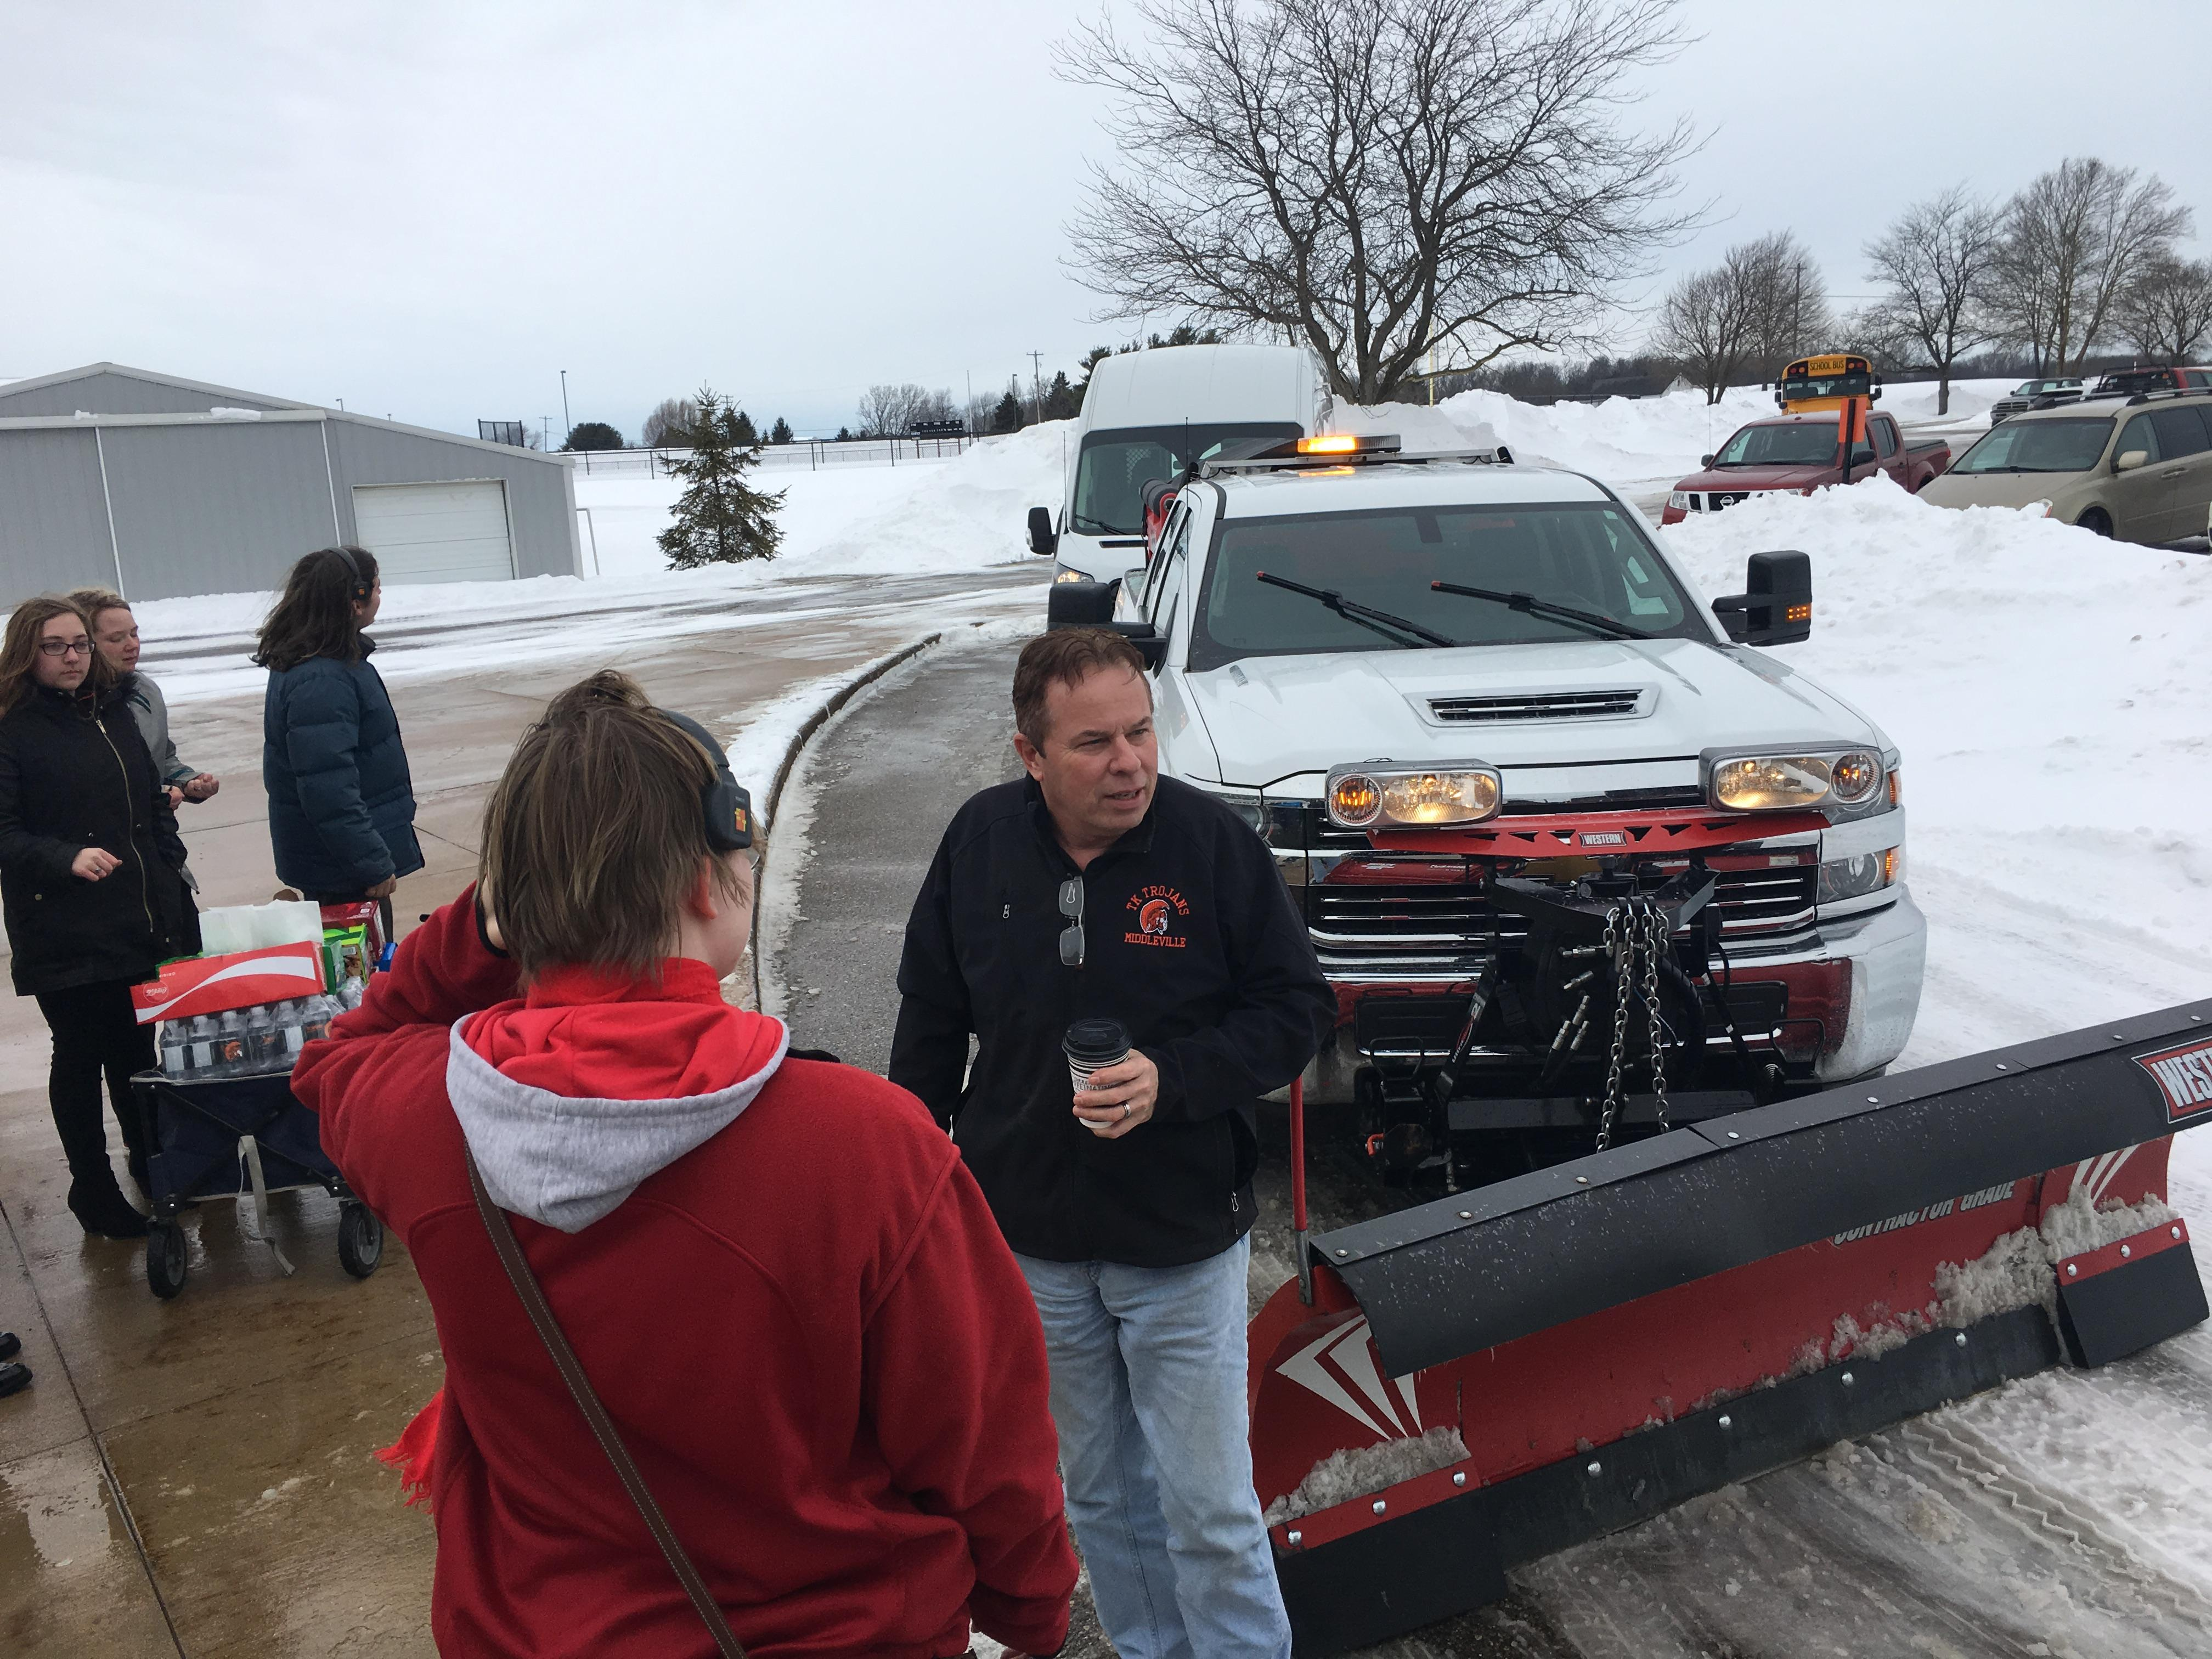 Thornapple Kellogg High school students give treats, beverages and words of  encouragement to a Middleville plow worker, they were handing out treats from 11 a.m. to 1 p.m. Feb. 14, 2019.{ } (WWMT/ Will Haenni)